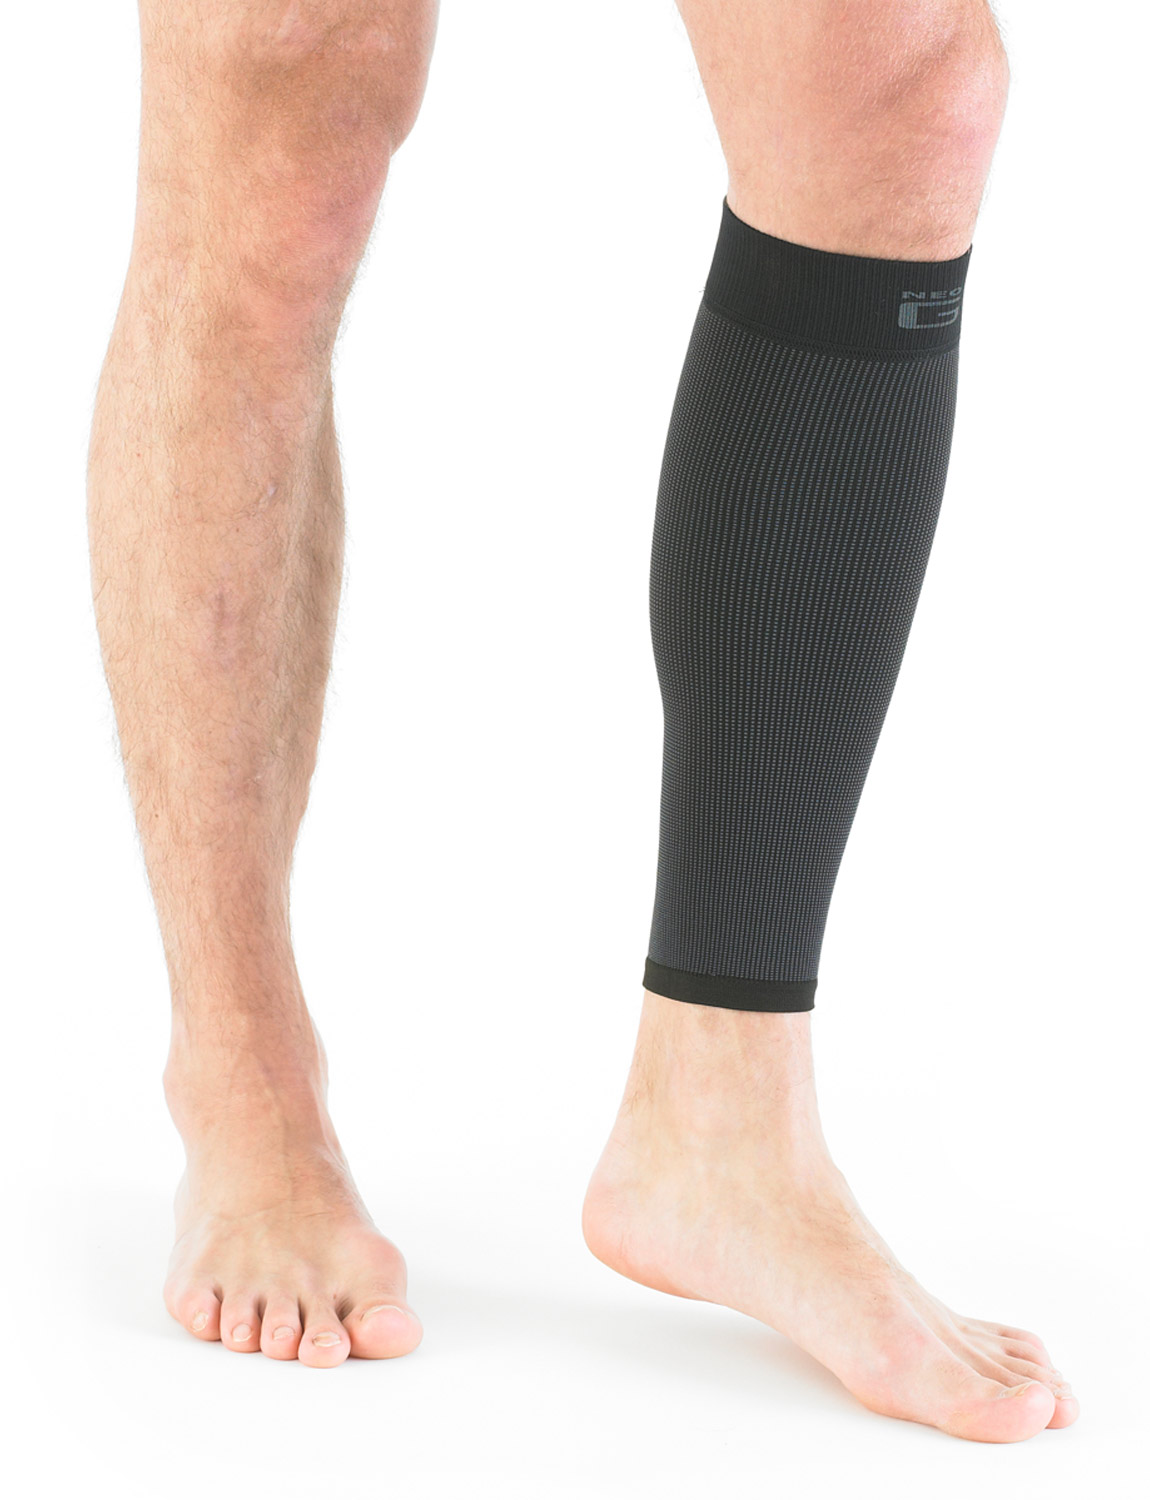 723 - CALF/SHIN SUPPORT  Compression provides a snug, yet flexible fit, helping warm muscles and support the calf/shin during sporting and occupational activities. The specialist breathable fabric helps control moisture during intense activities whilst providing support during movement. The slimline, snug and dynamic design means it can easily be worn under everyday clothes at work, home or on the field for comfort, support and reassurance when you need it most.